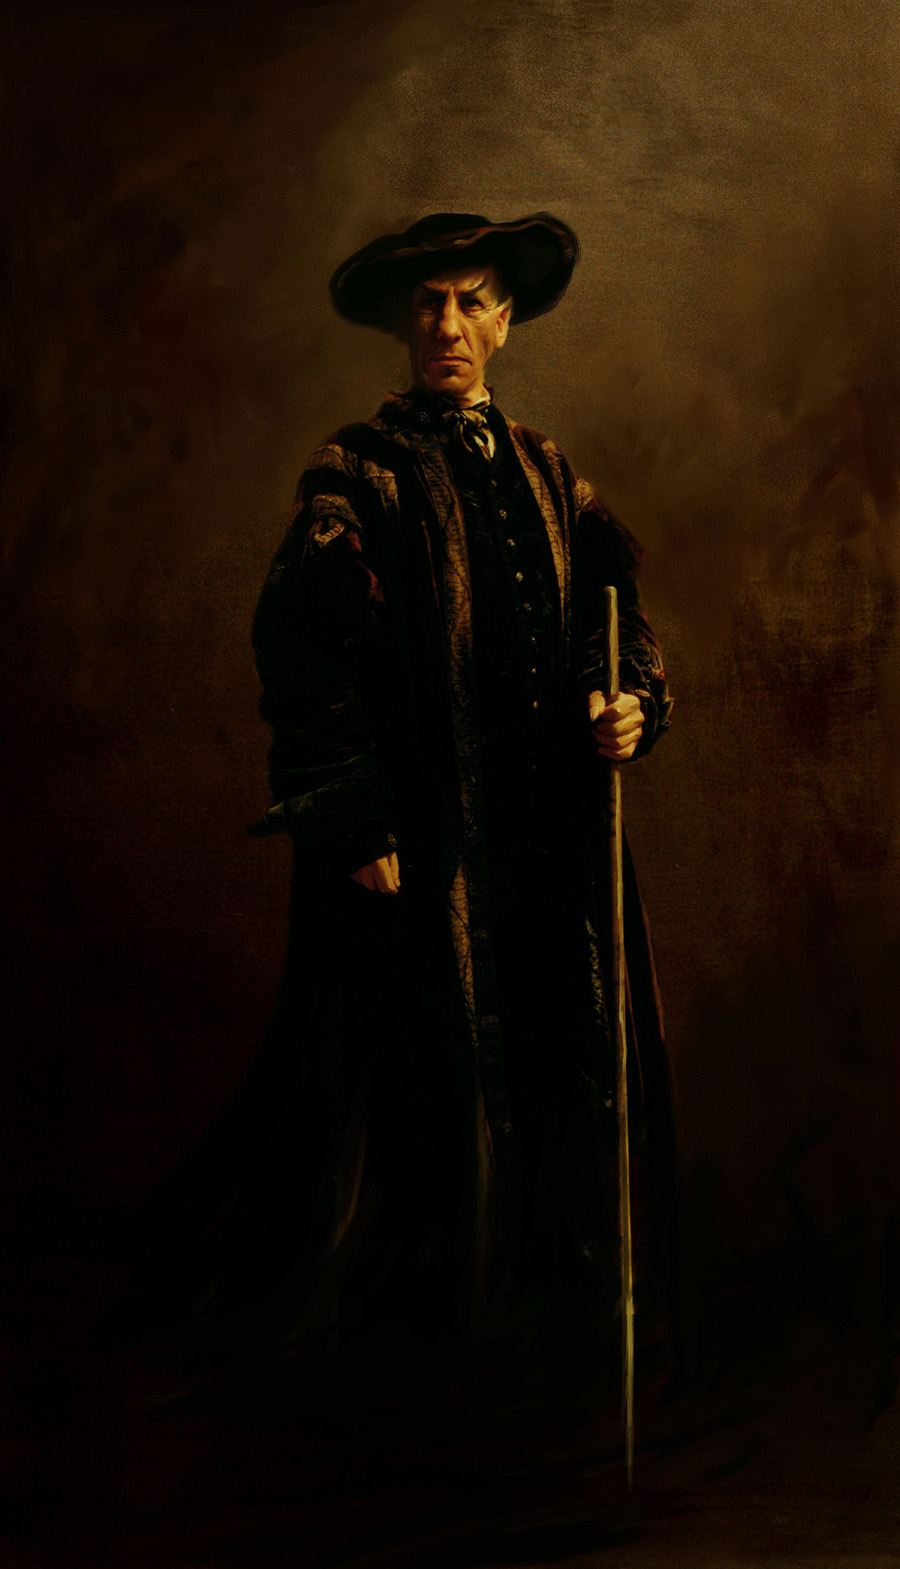 Harry Potter - Hogwarts Wizard Portrait 05.jpg